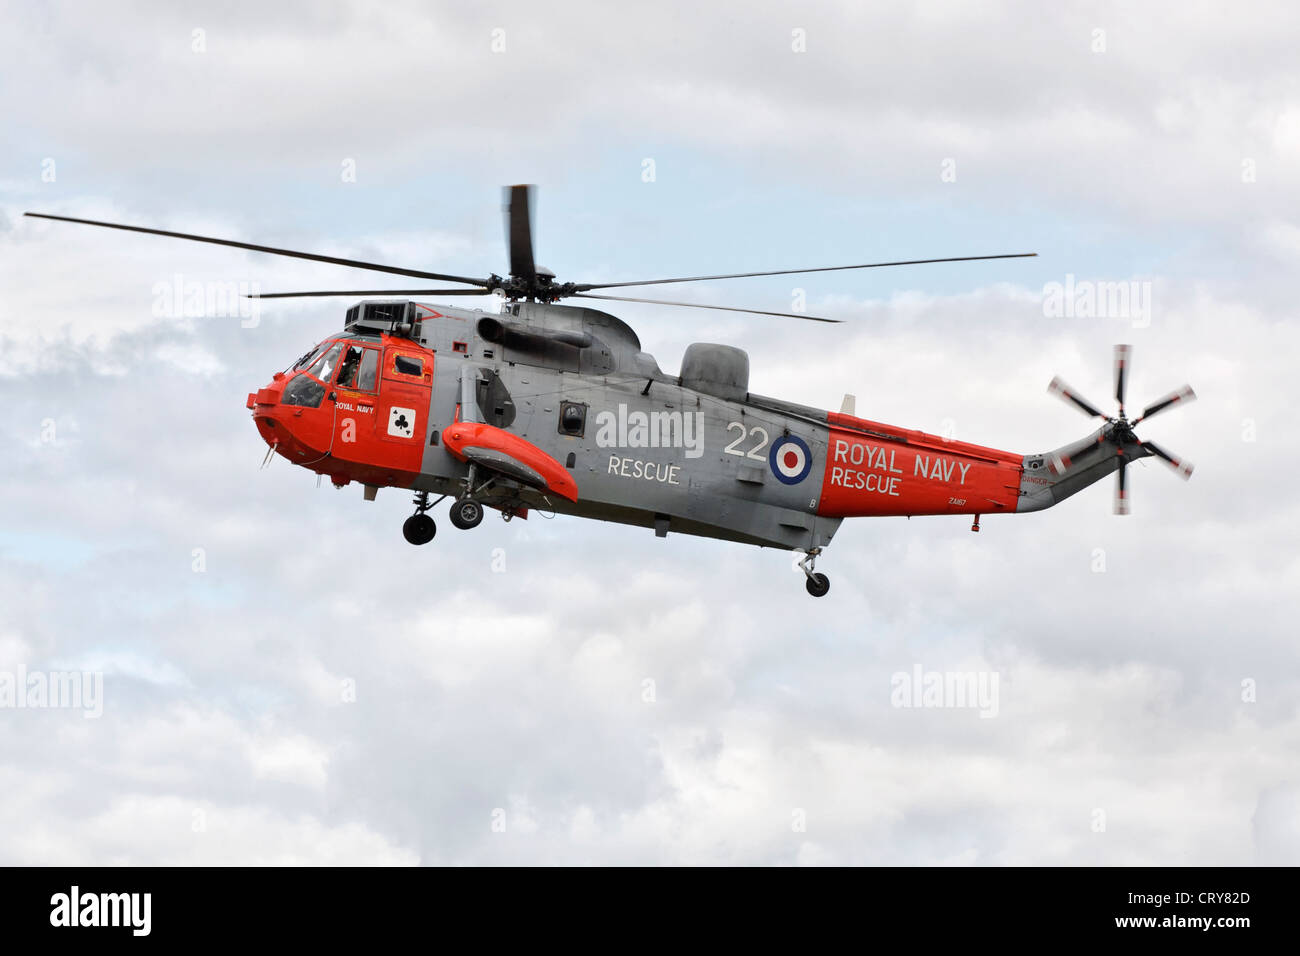 Westland Sea King helicopter of the Royal Navy rescue service - Stock Image